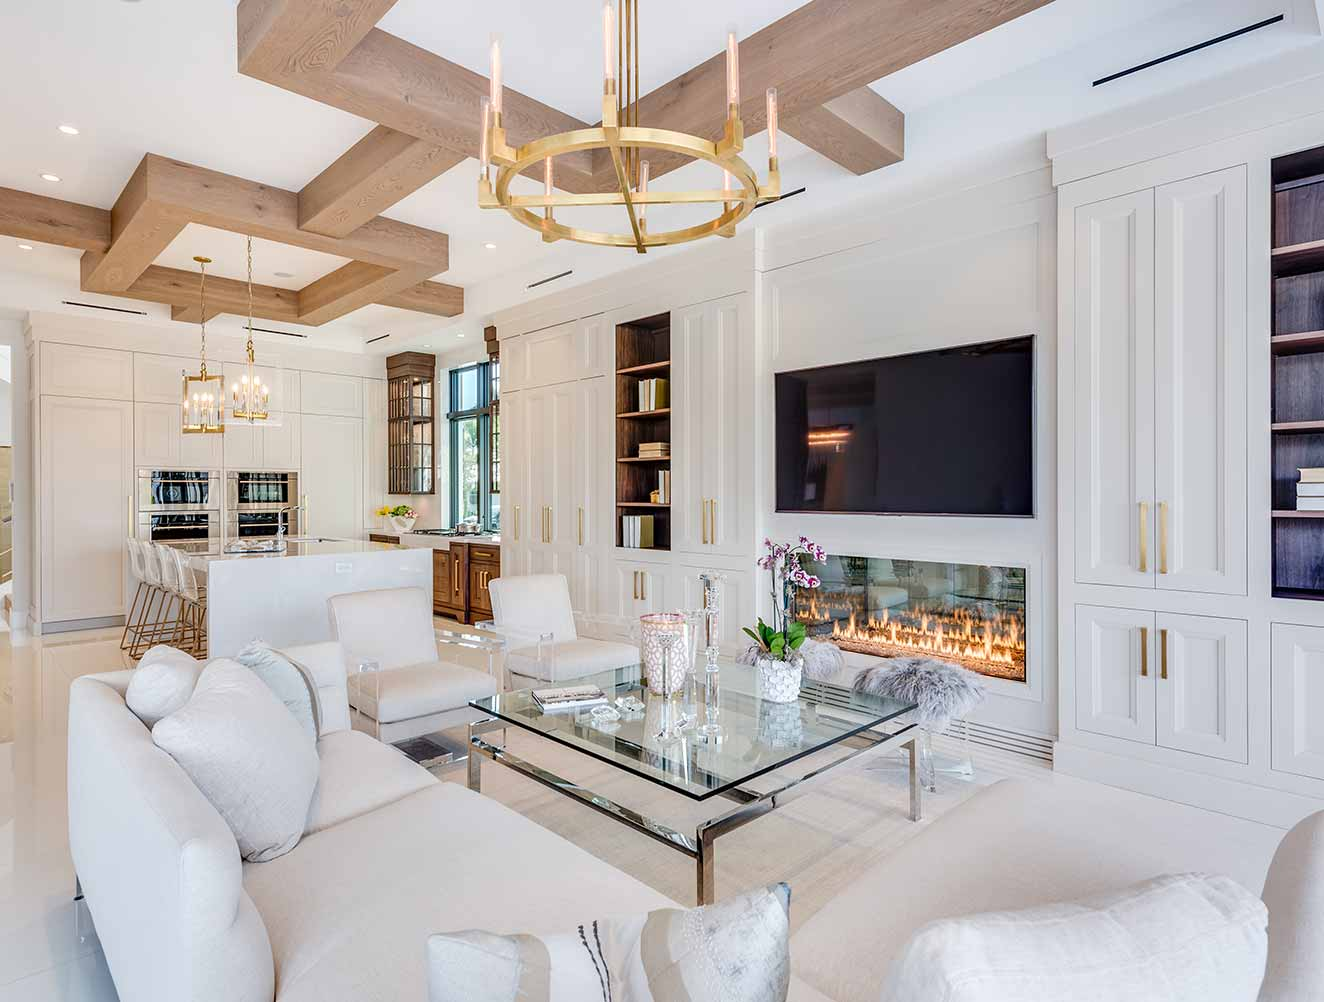 Wood & White Modern Ceiling Design Collection in Naples Florida homes. Designed by Kukk Architecture & Design Naples.